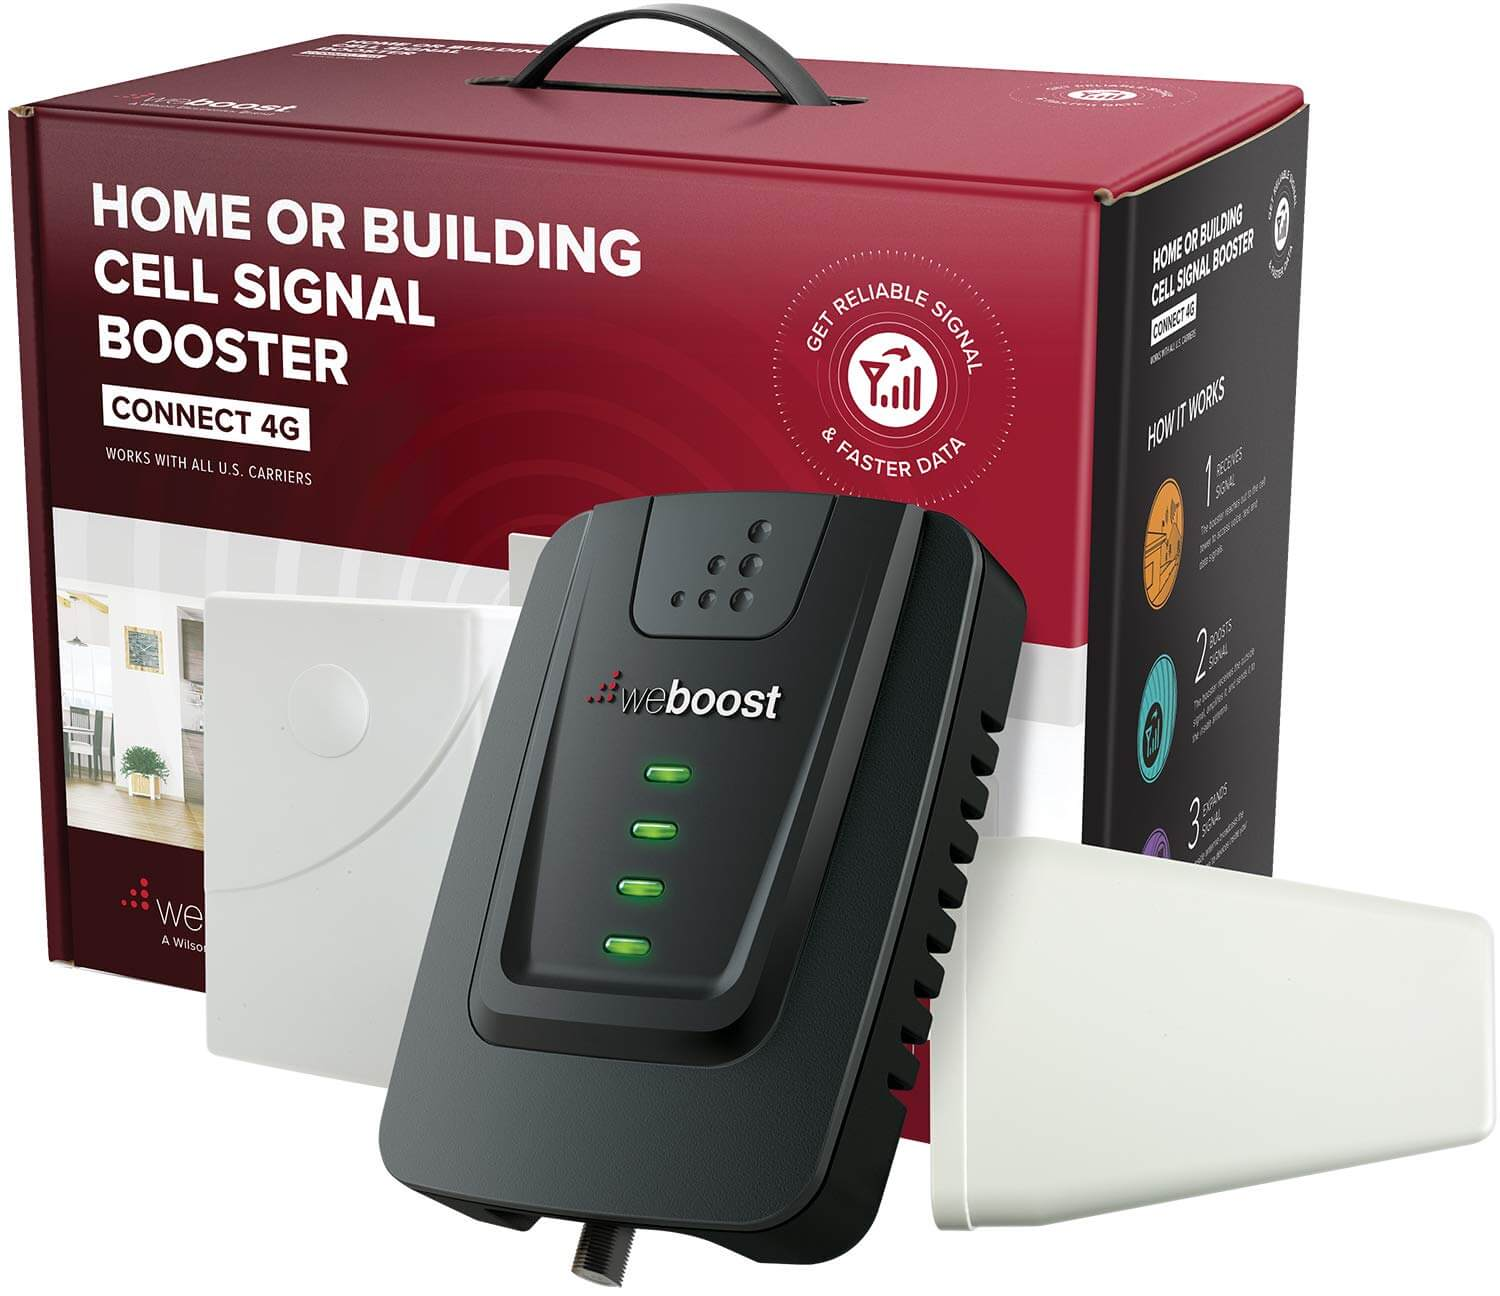 weBoost Connect 4G 470103 Indoor Cell Phone Signal Booster for Home and Office - Verizon, AT&T T-Mobile Sprint - Supports 5000 Square Foot Area 2